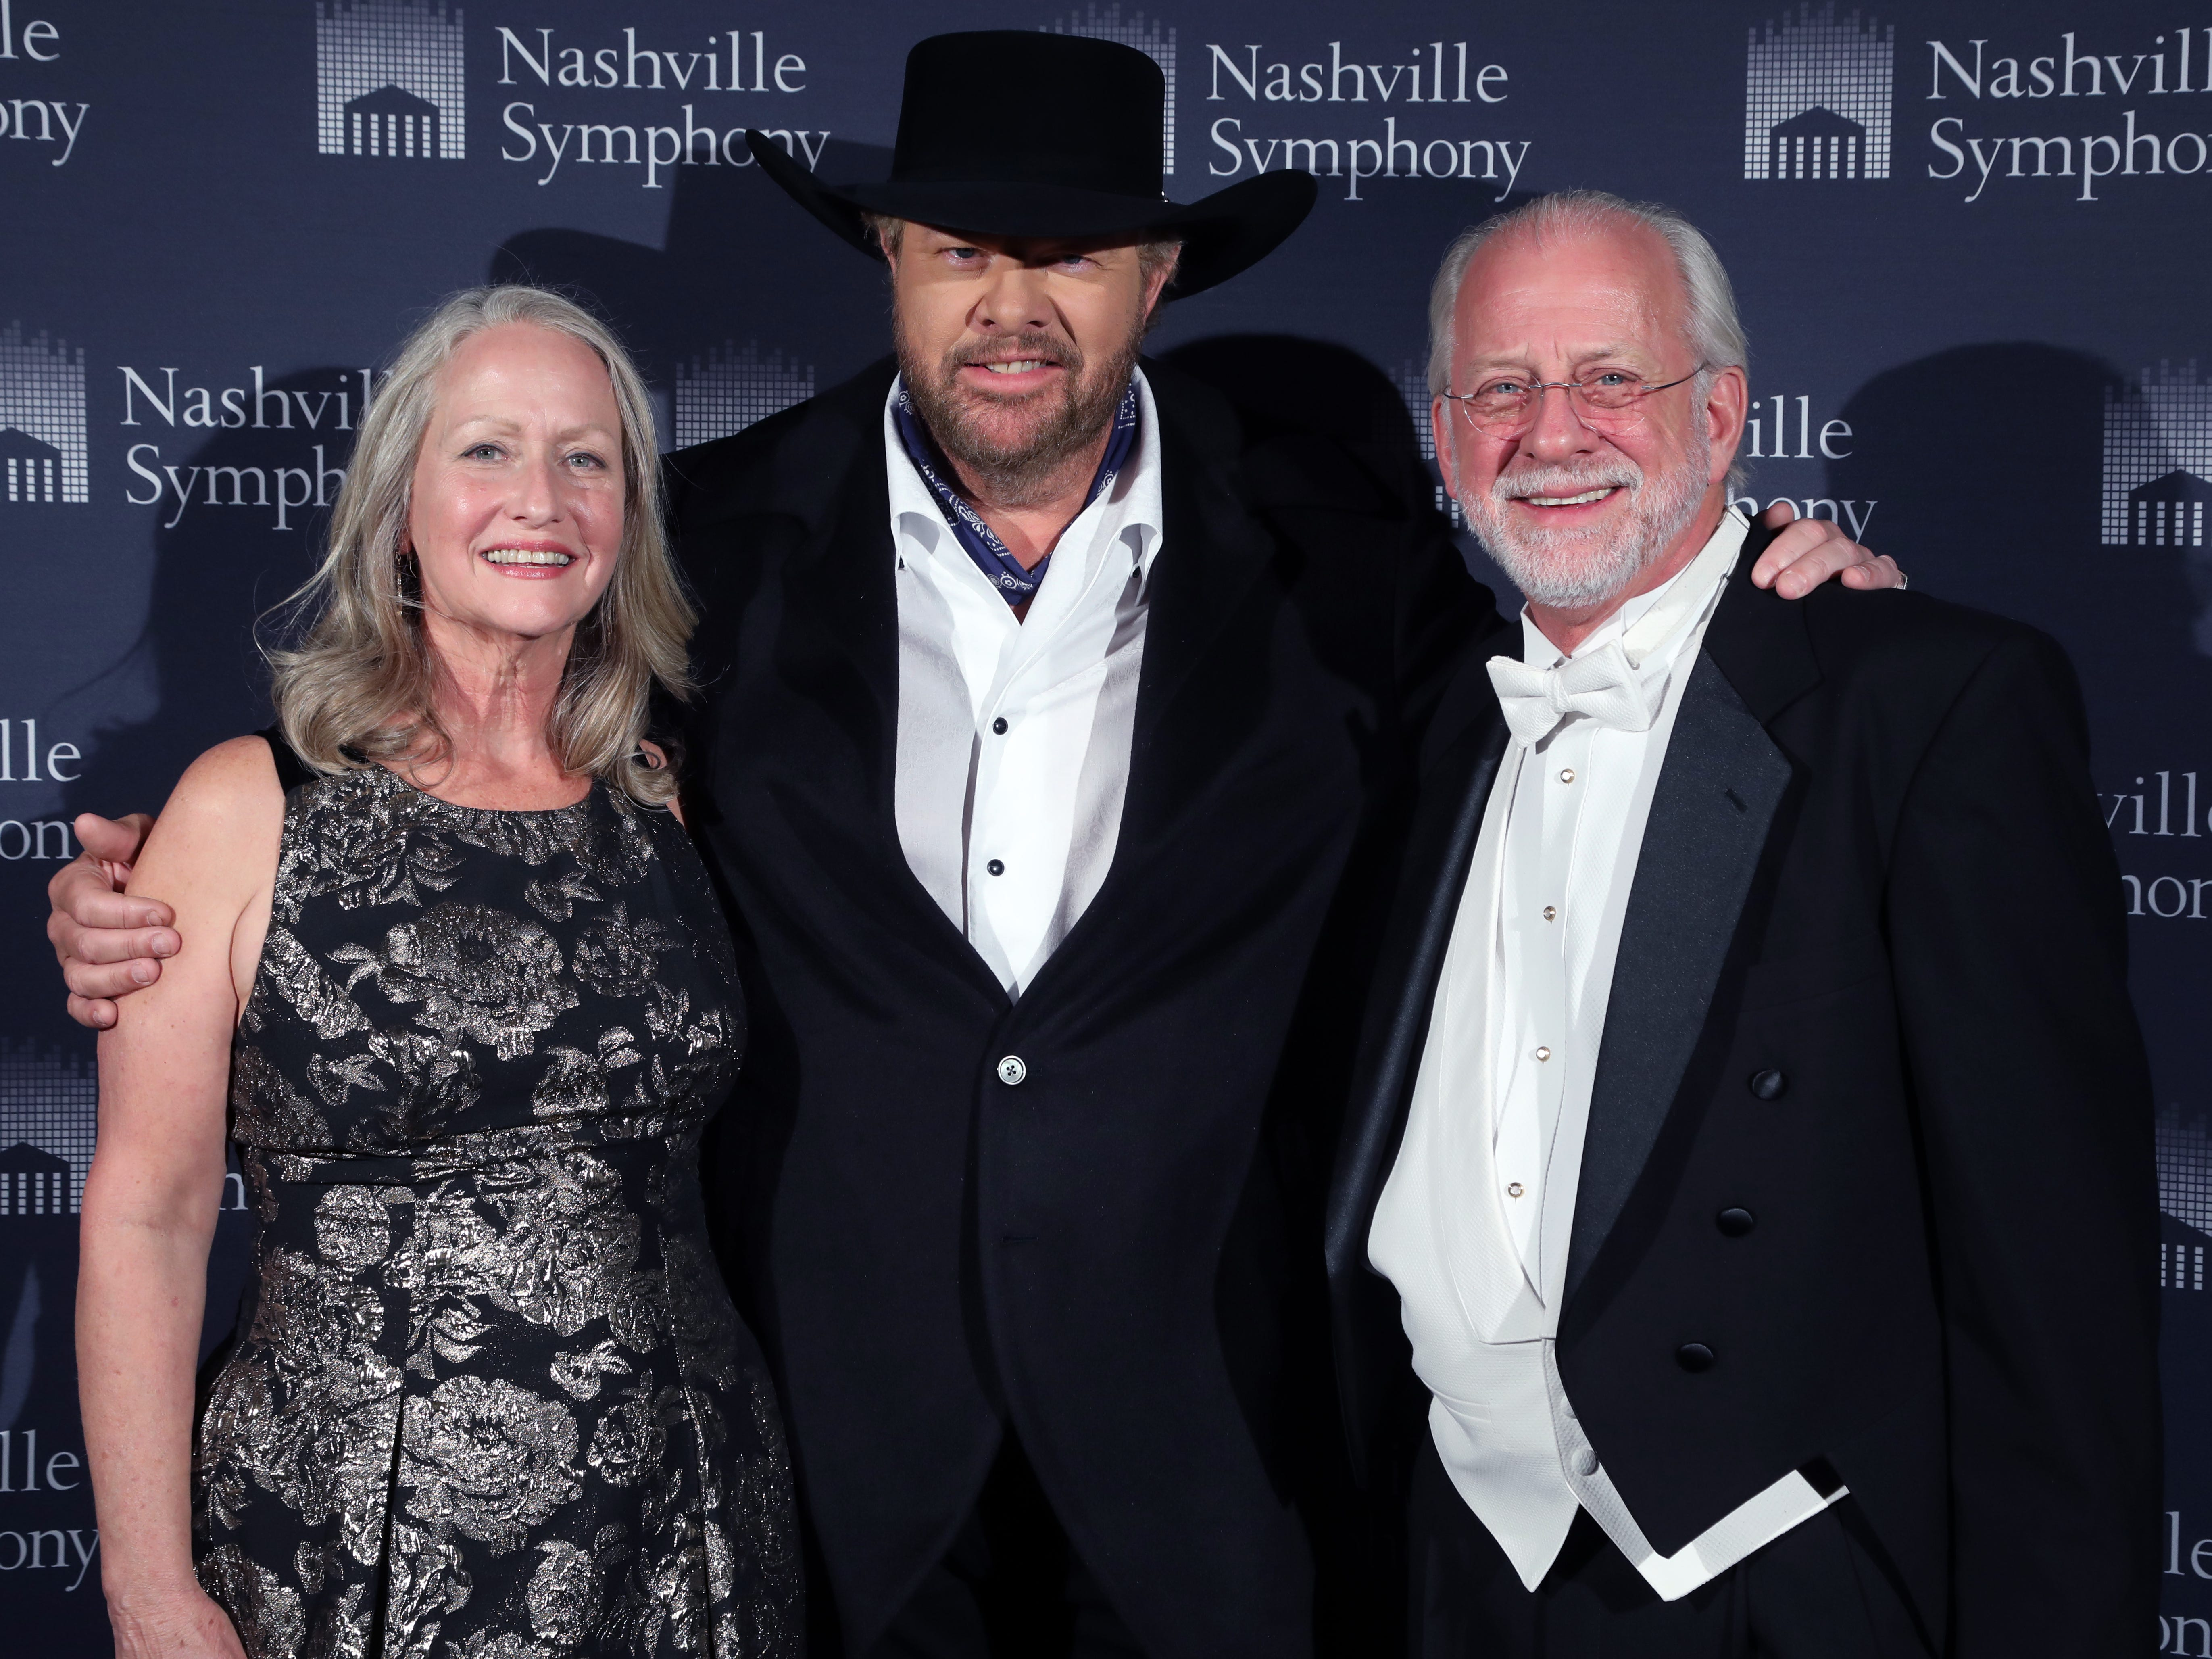 Jan Valentine, Toby Keith, Alan Valentine at the 34th annual Symphony Ball on Saturday, December 8, 2018, at Schermerhorn Symphony Center.